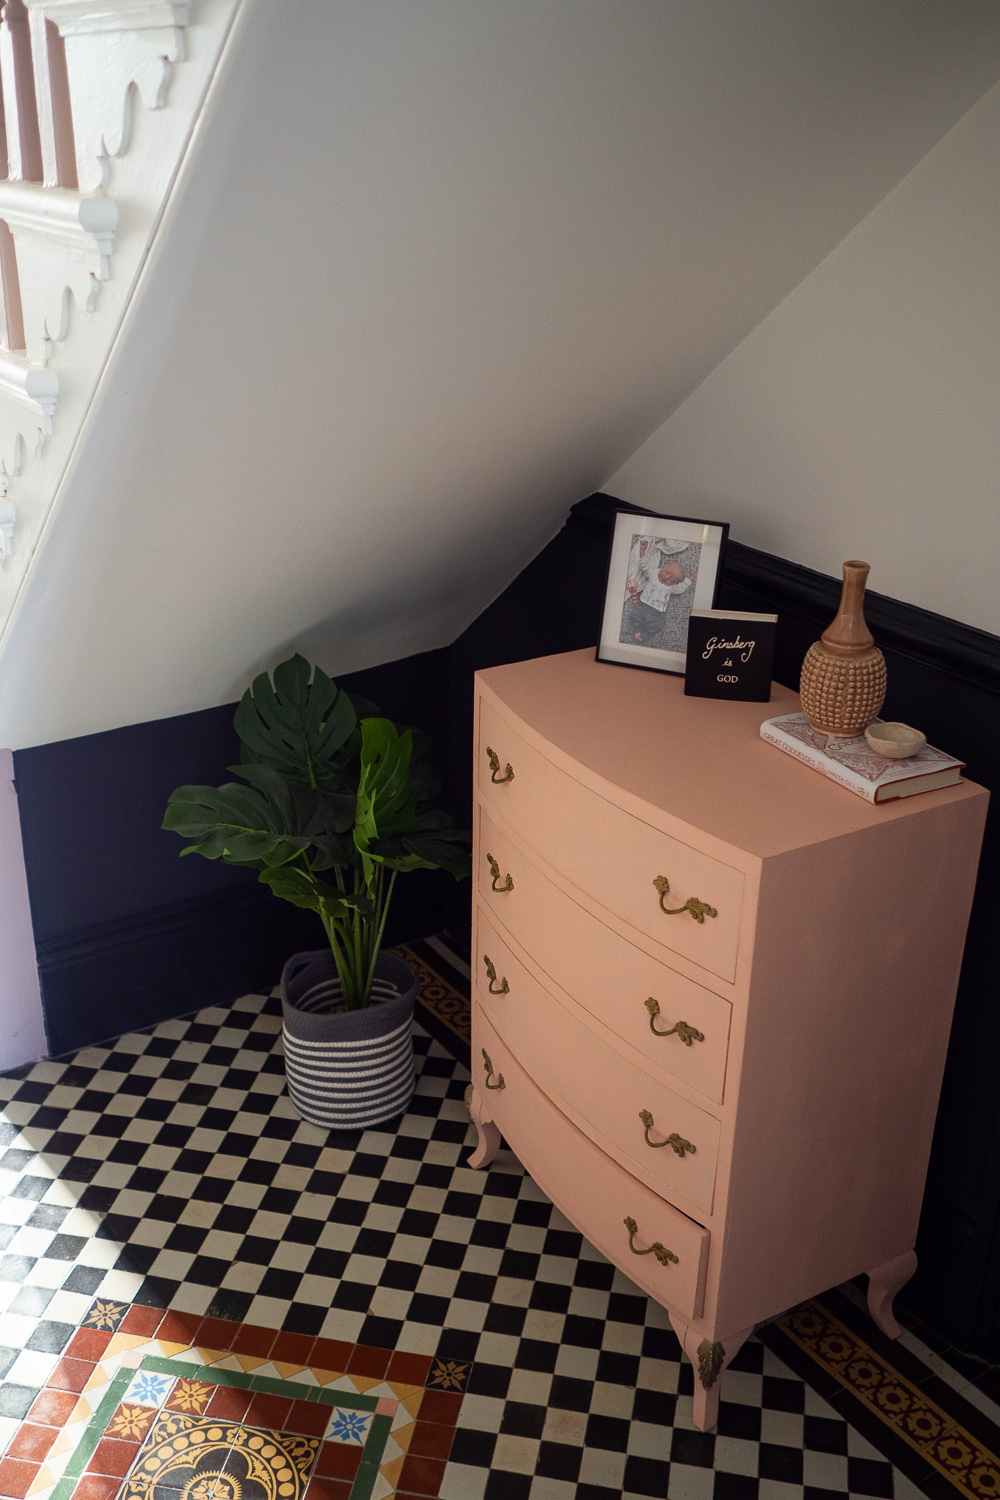 Under the stair case where an old up-cycled repainted cabinet now lives.